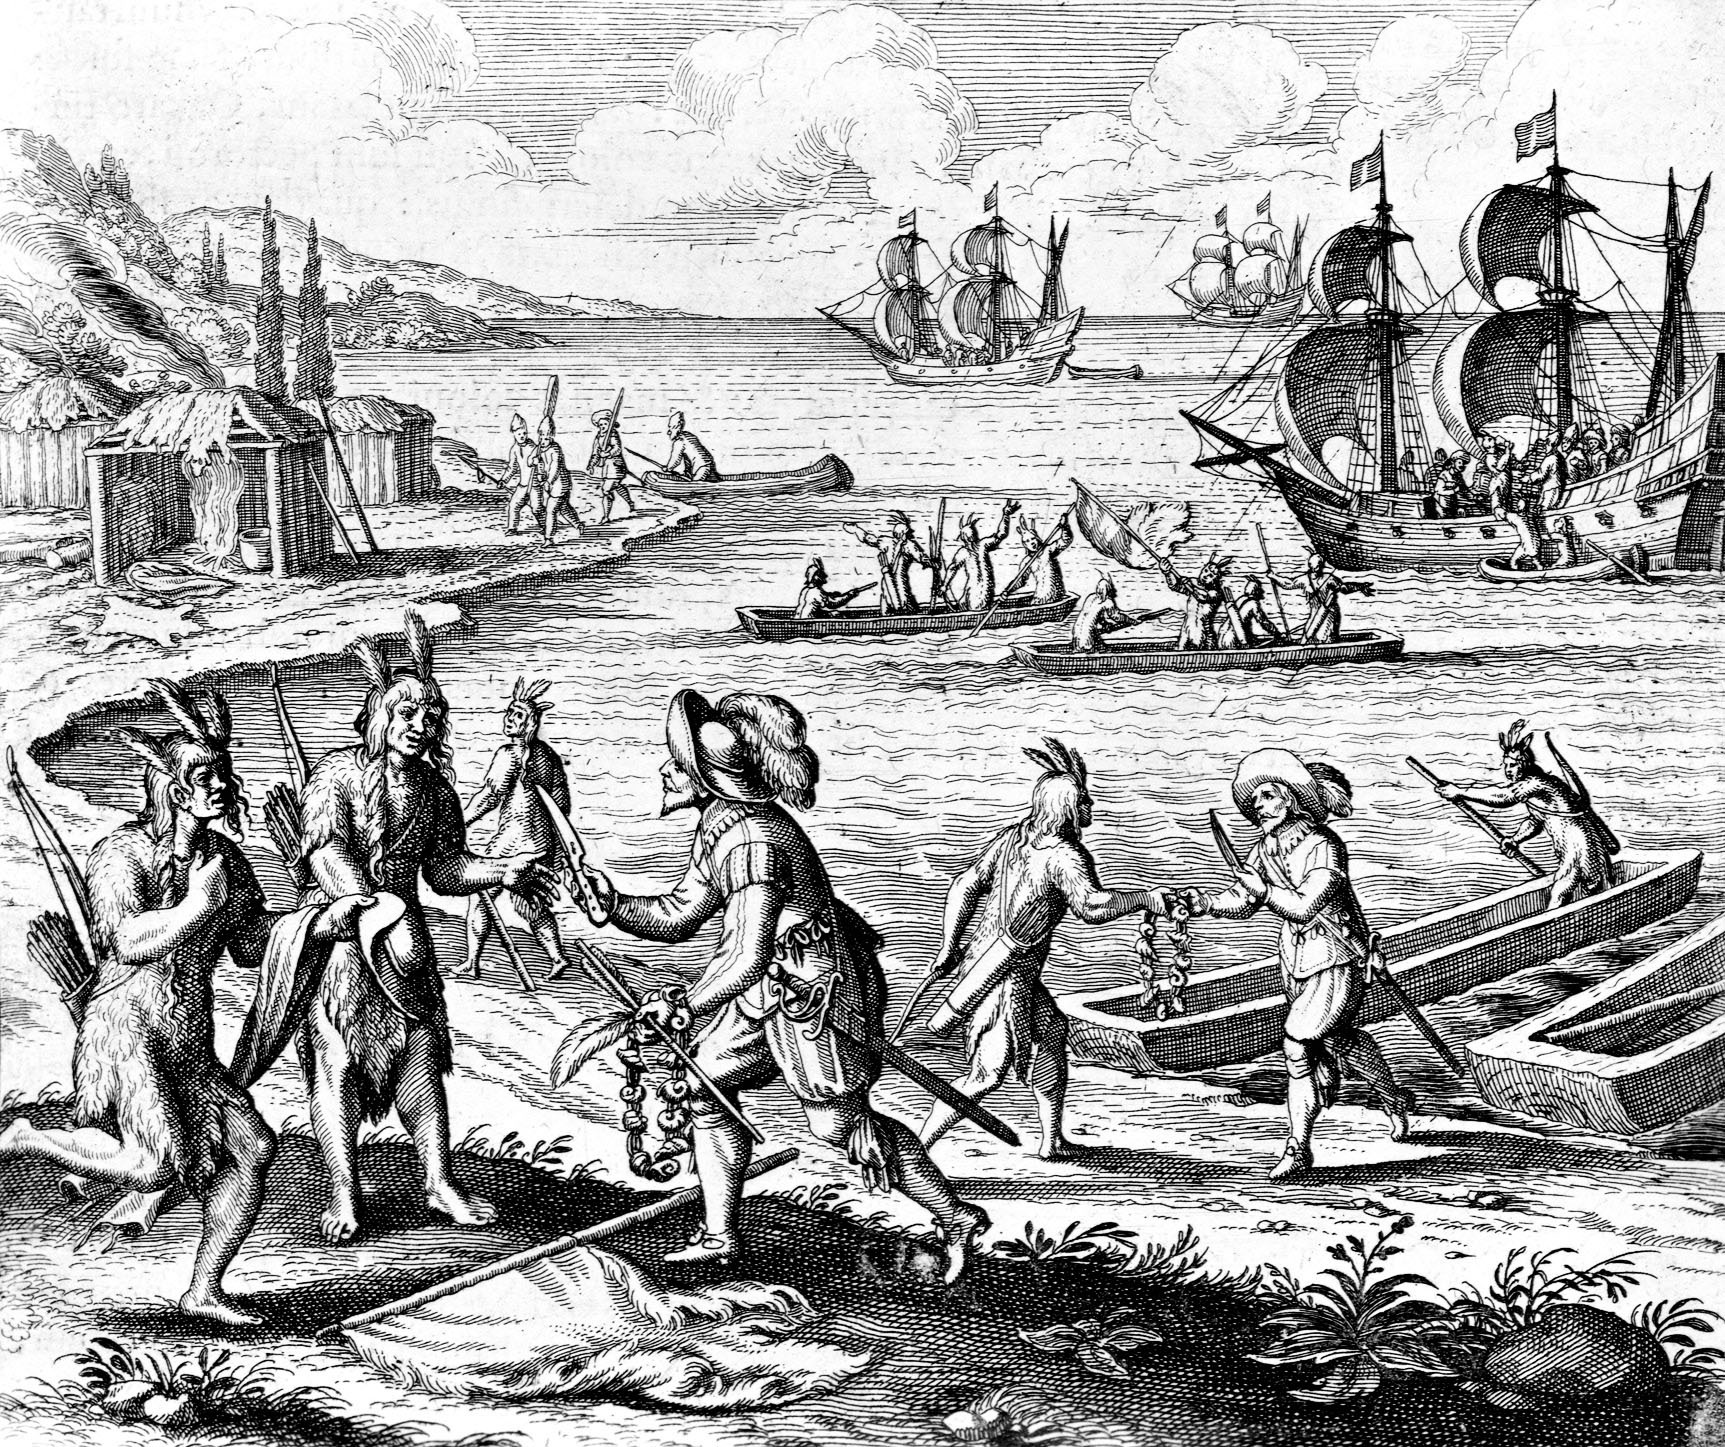 puritans vs native americans essay Native american and puritan relations of a working relationship with a native american culture and lifestyle differed between the native americans and.